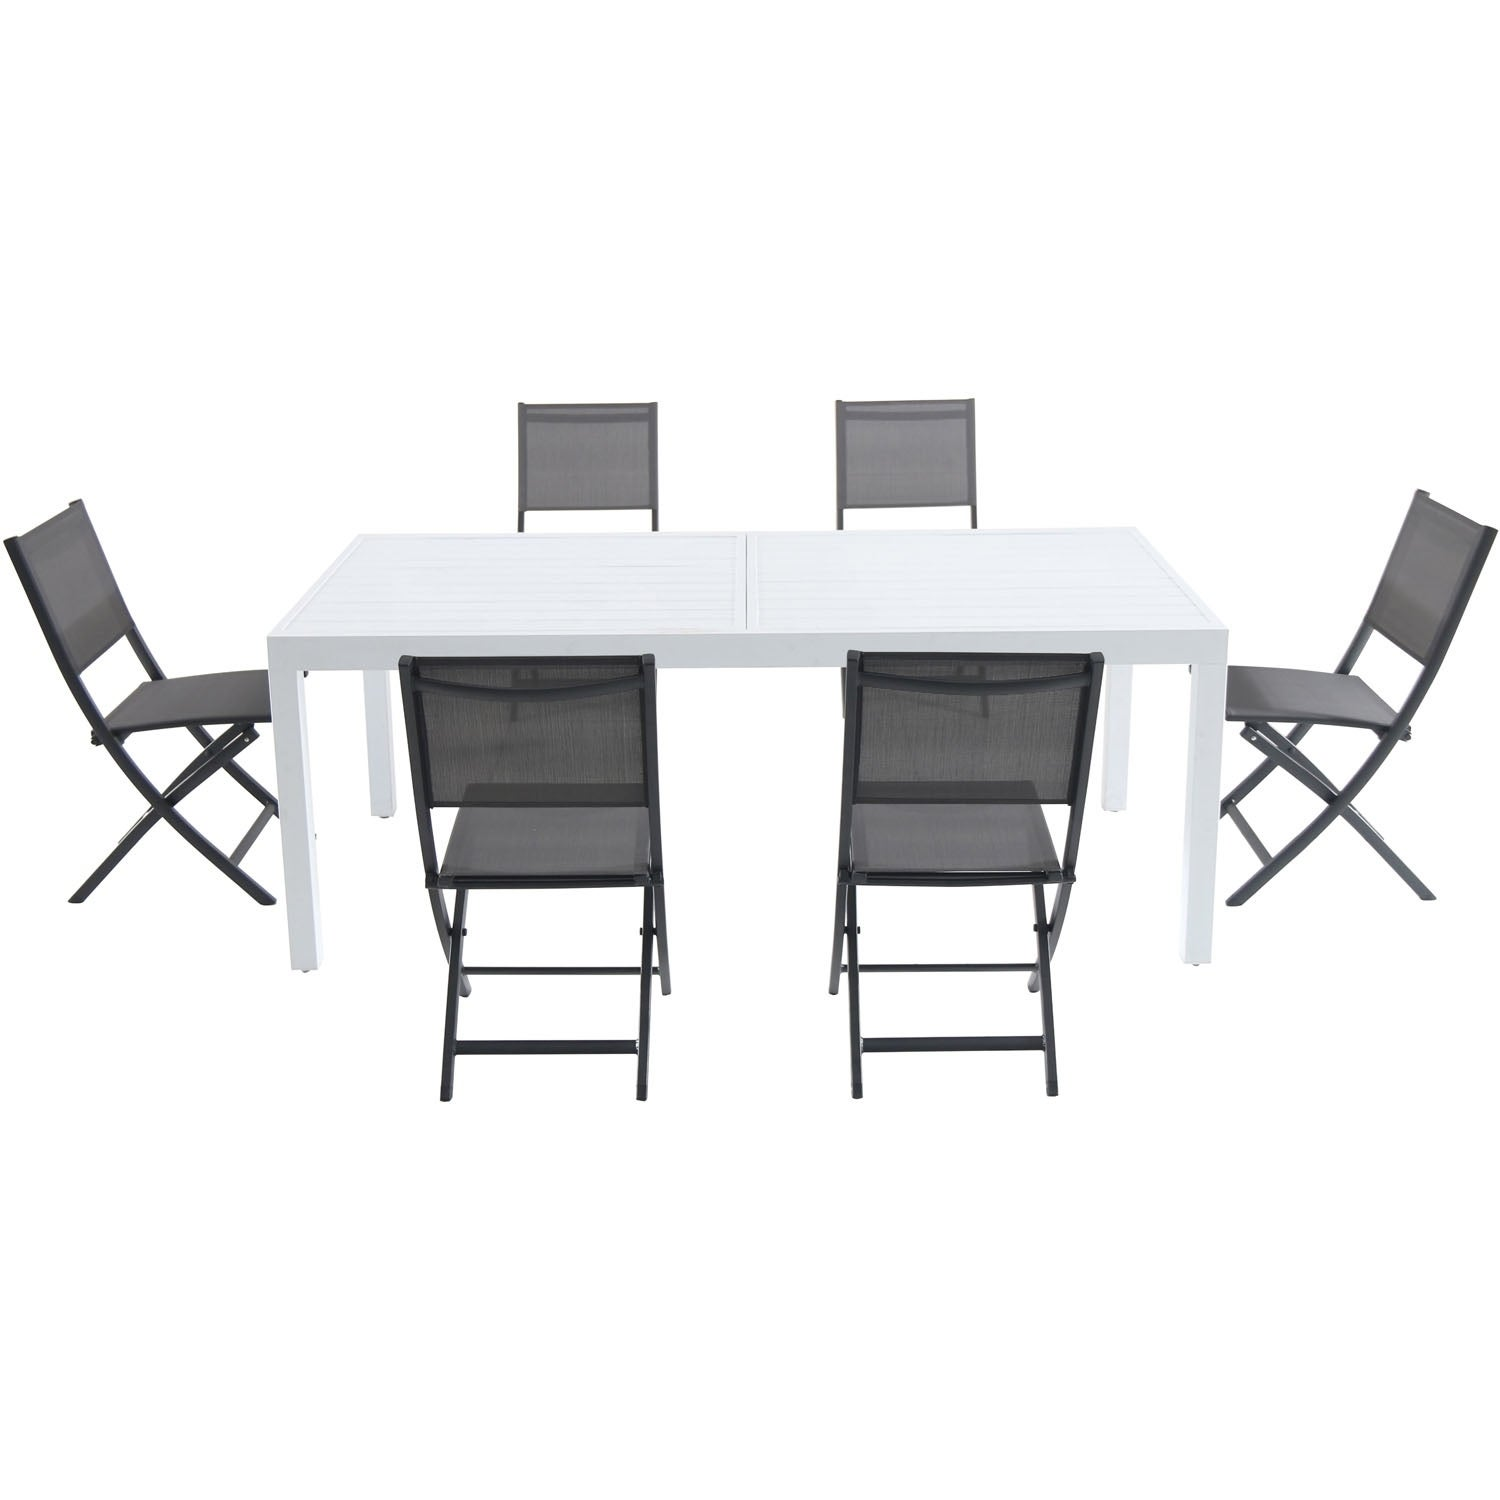 Cambridge Palermo 7-Piece Outdoor Dining Set with 6 Folding Sling Chairs in Gray and a White 40 x 118 Expandable Dining Table